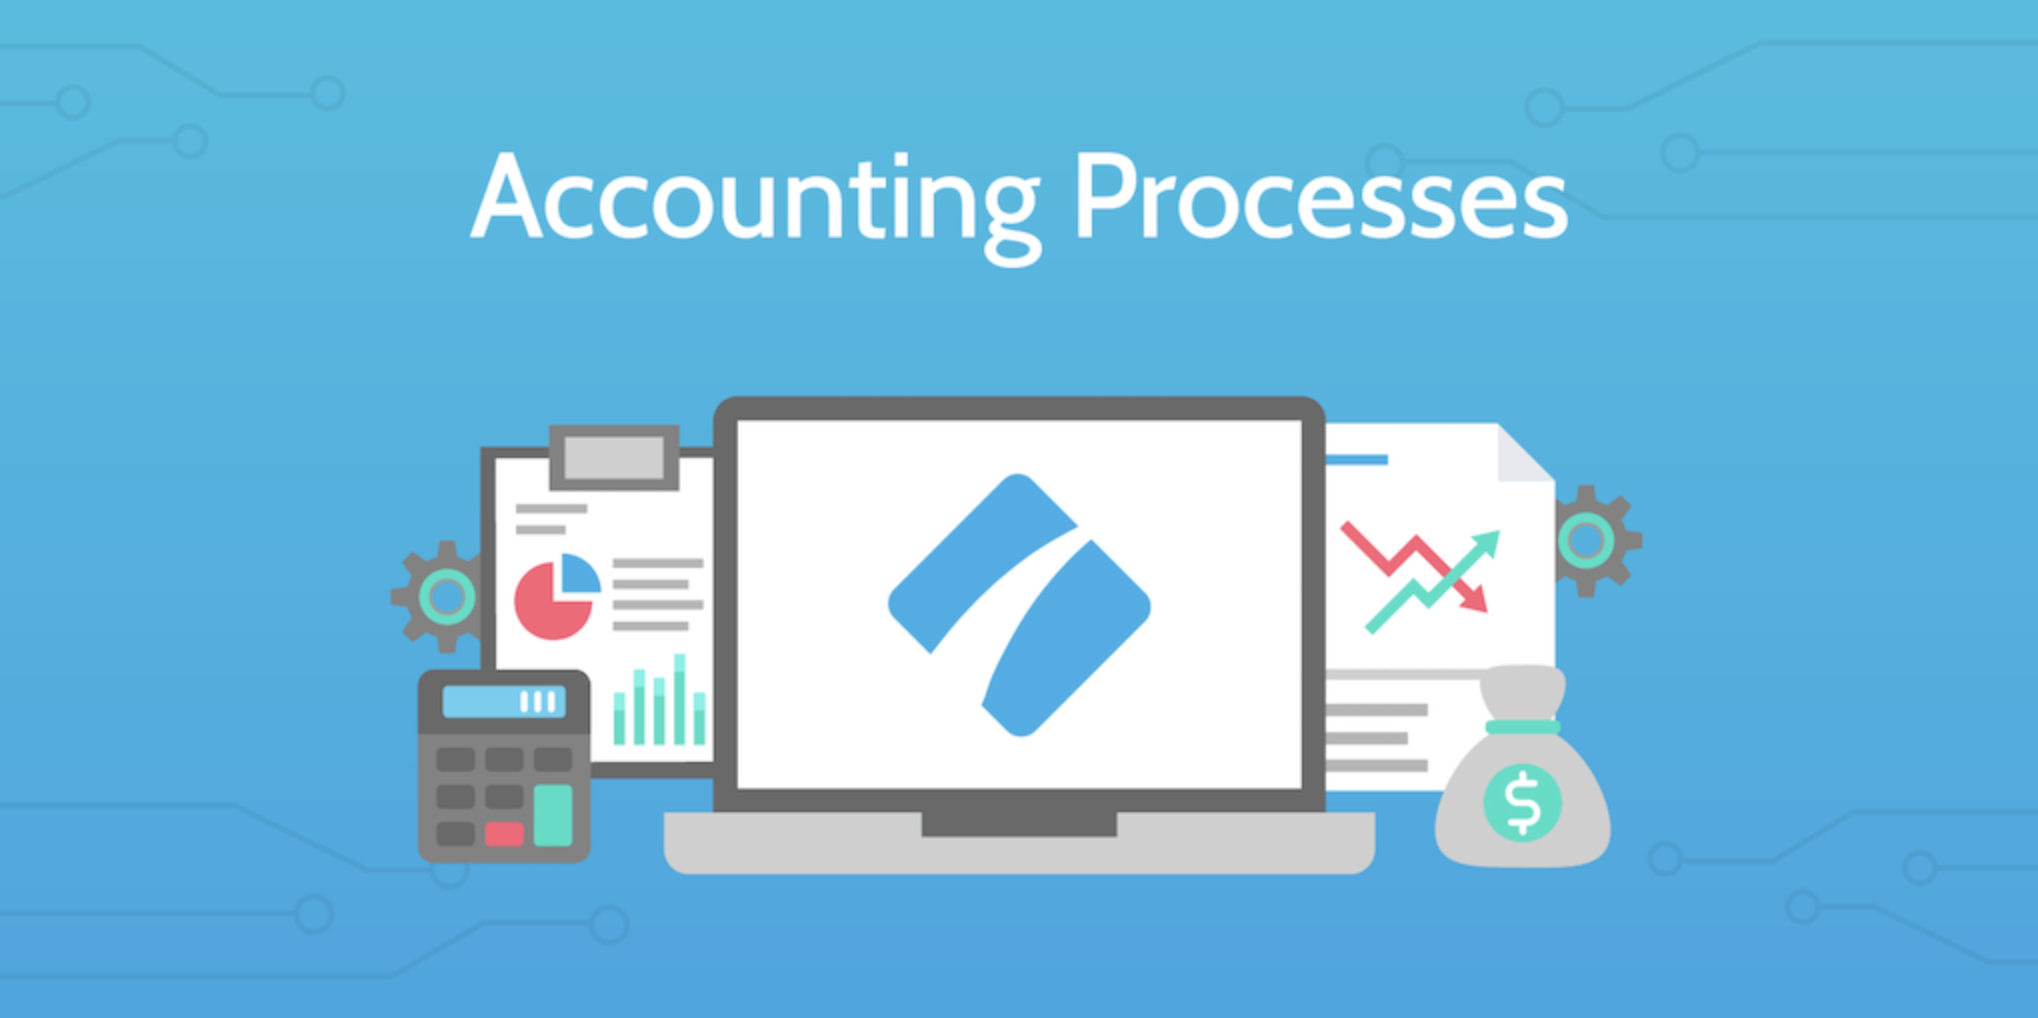 purchase order template accounting processes